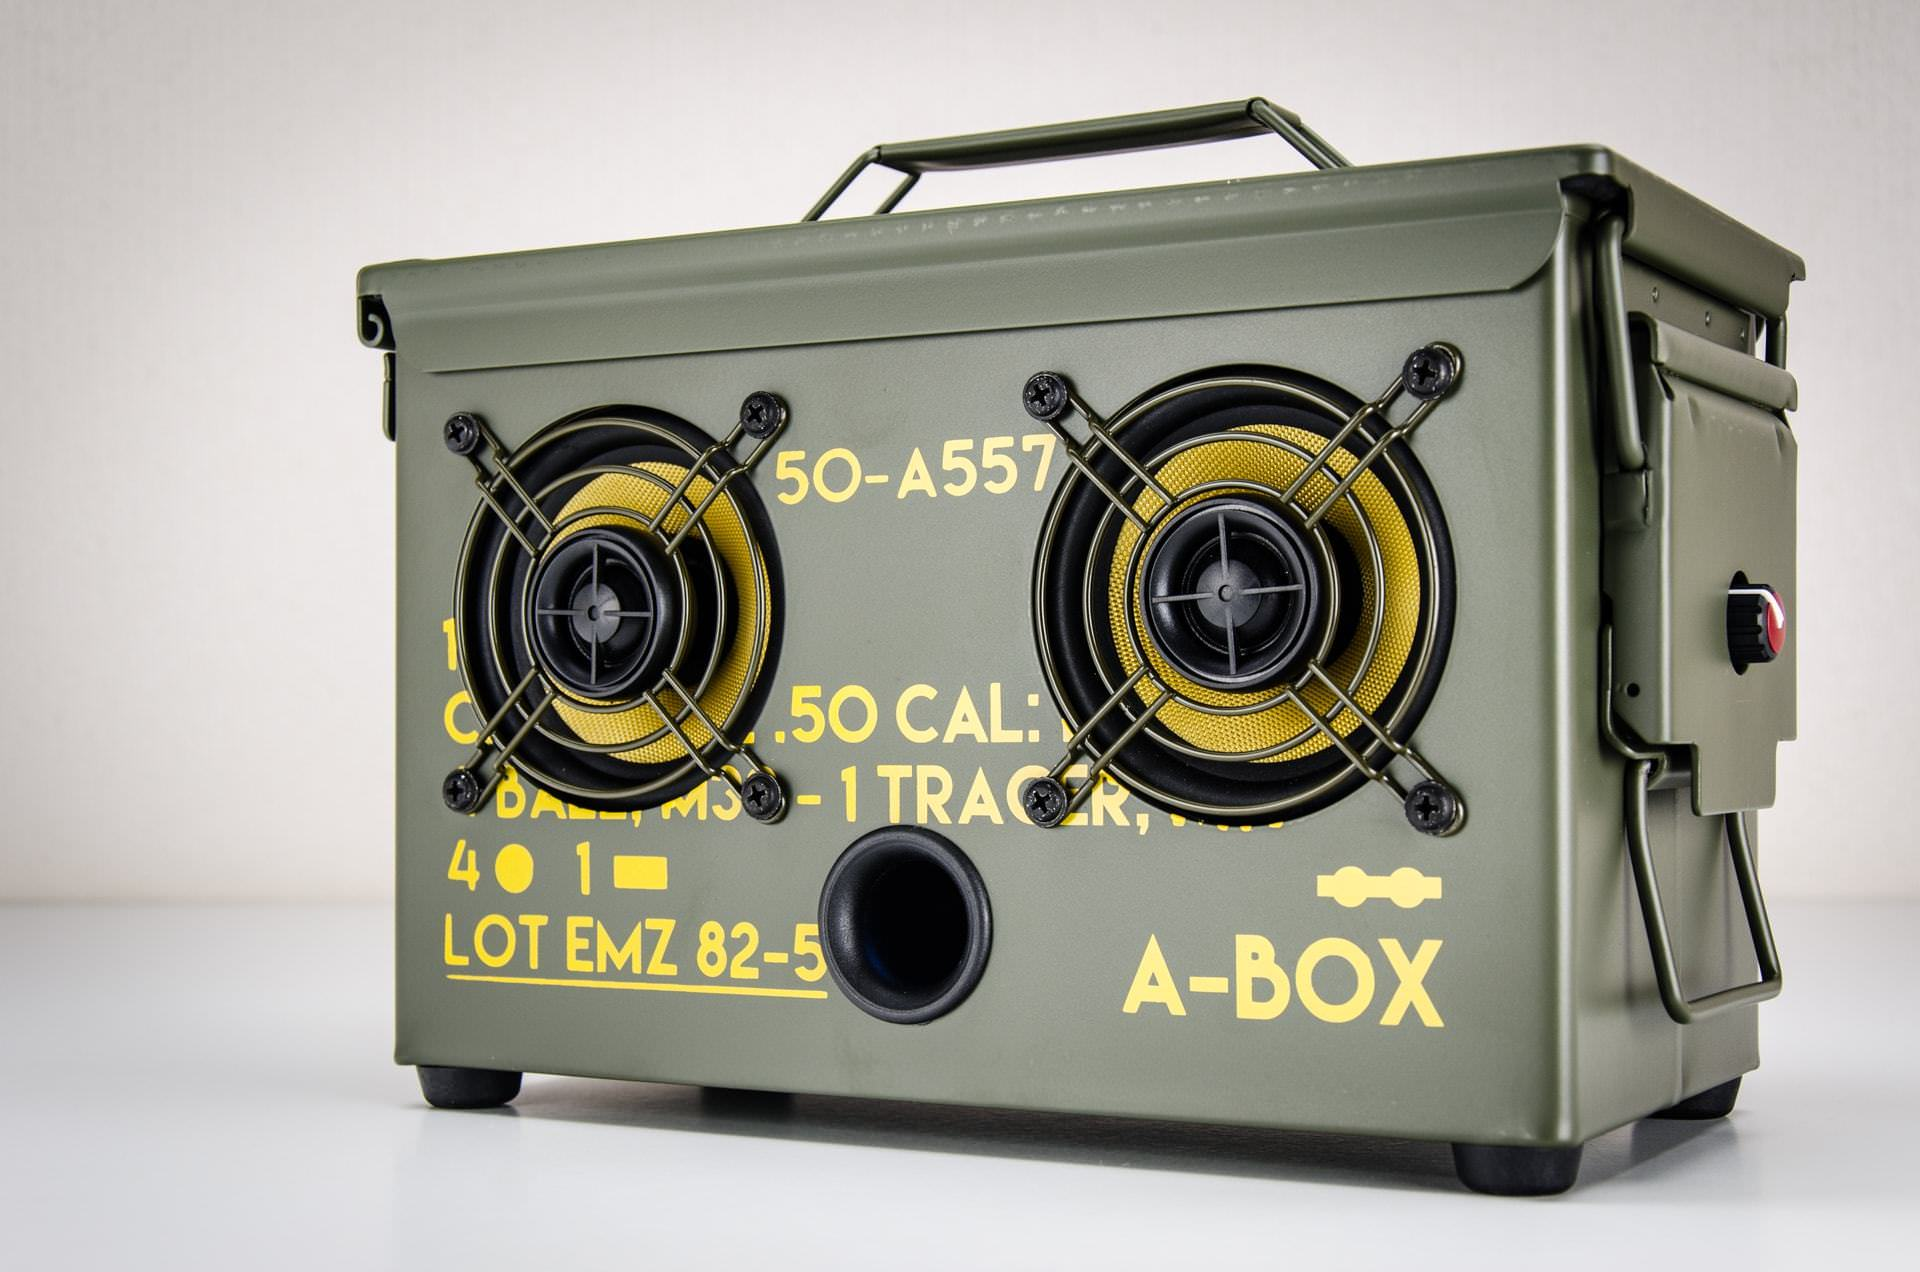 The Thodio 50 Cal A Box The Original Ammo Can Boombox